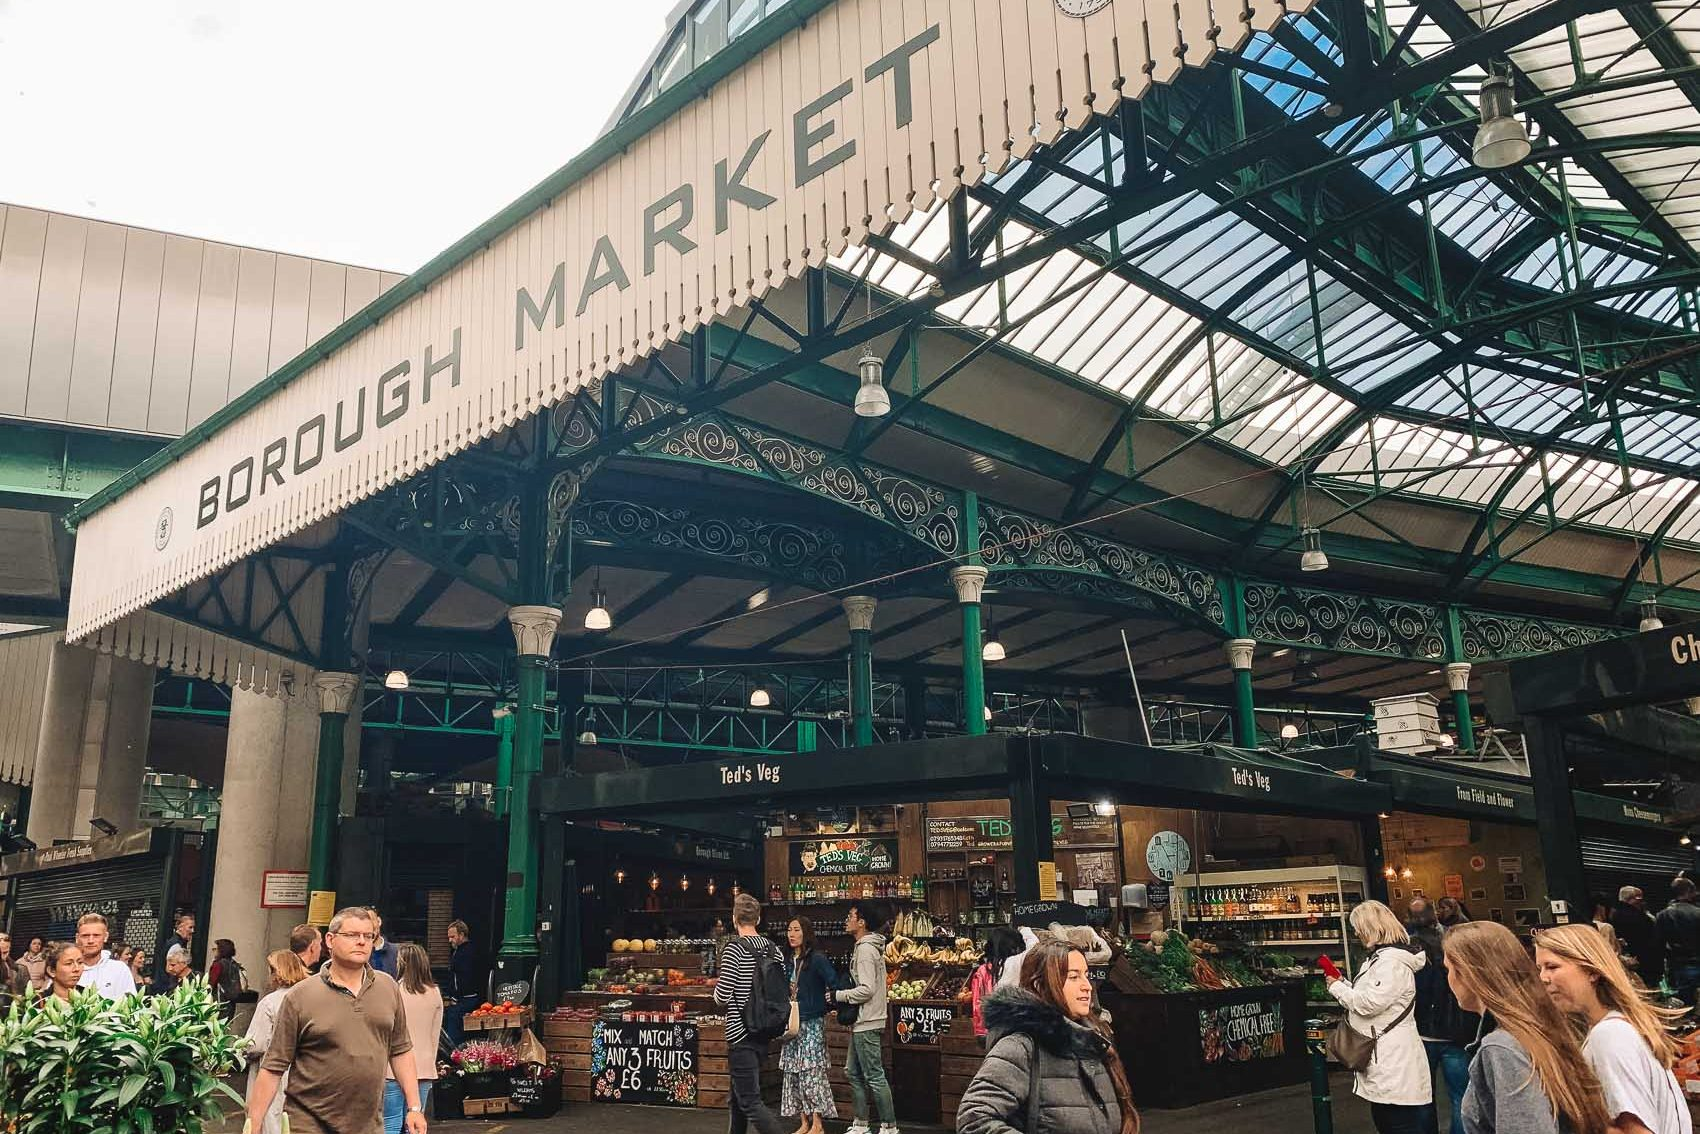 Borough market in London - bucket list travel